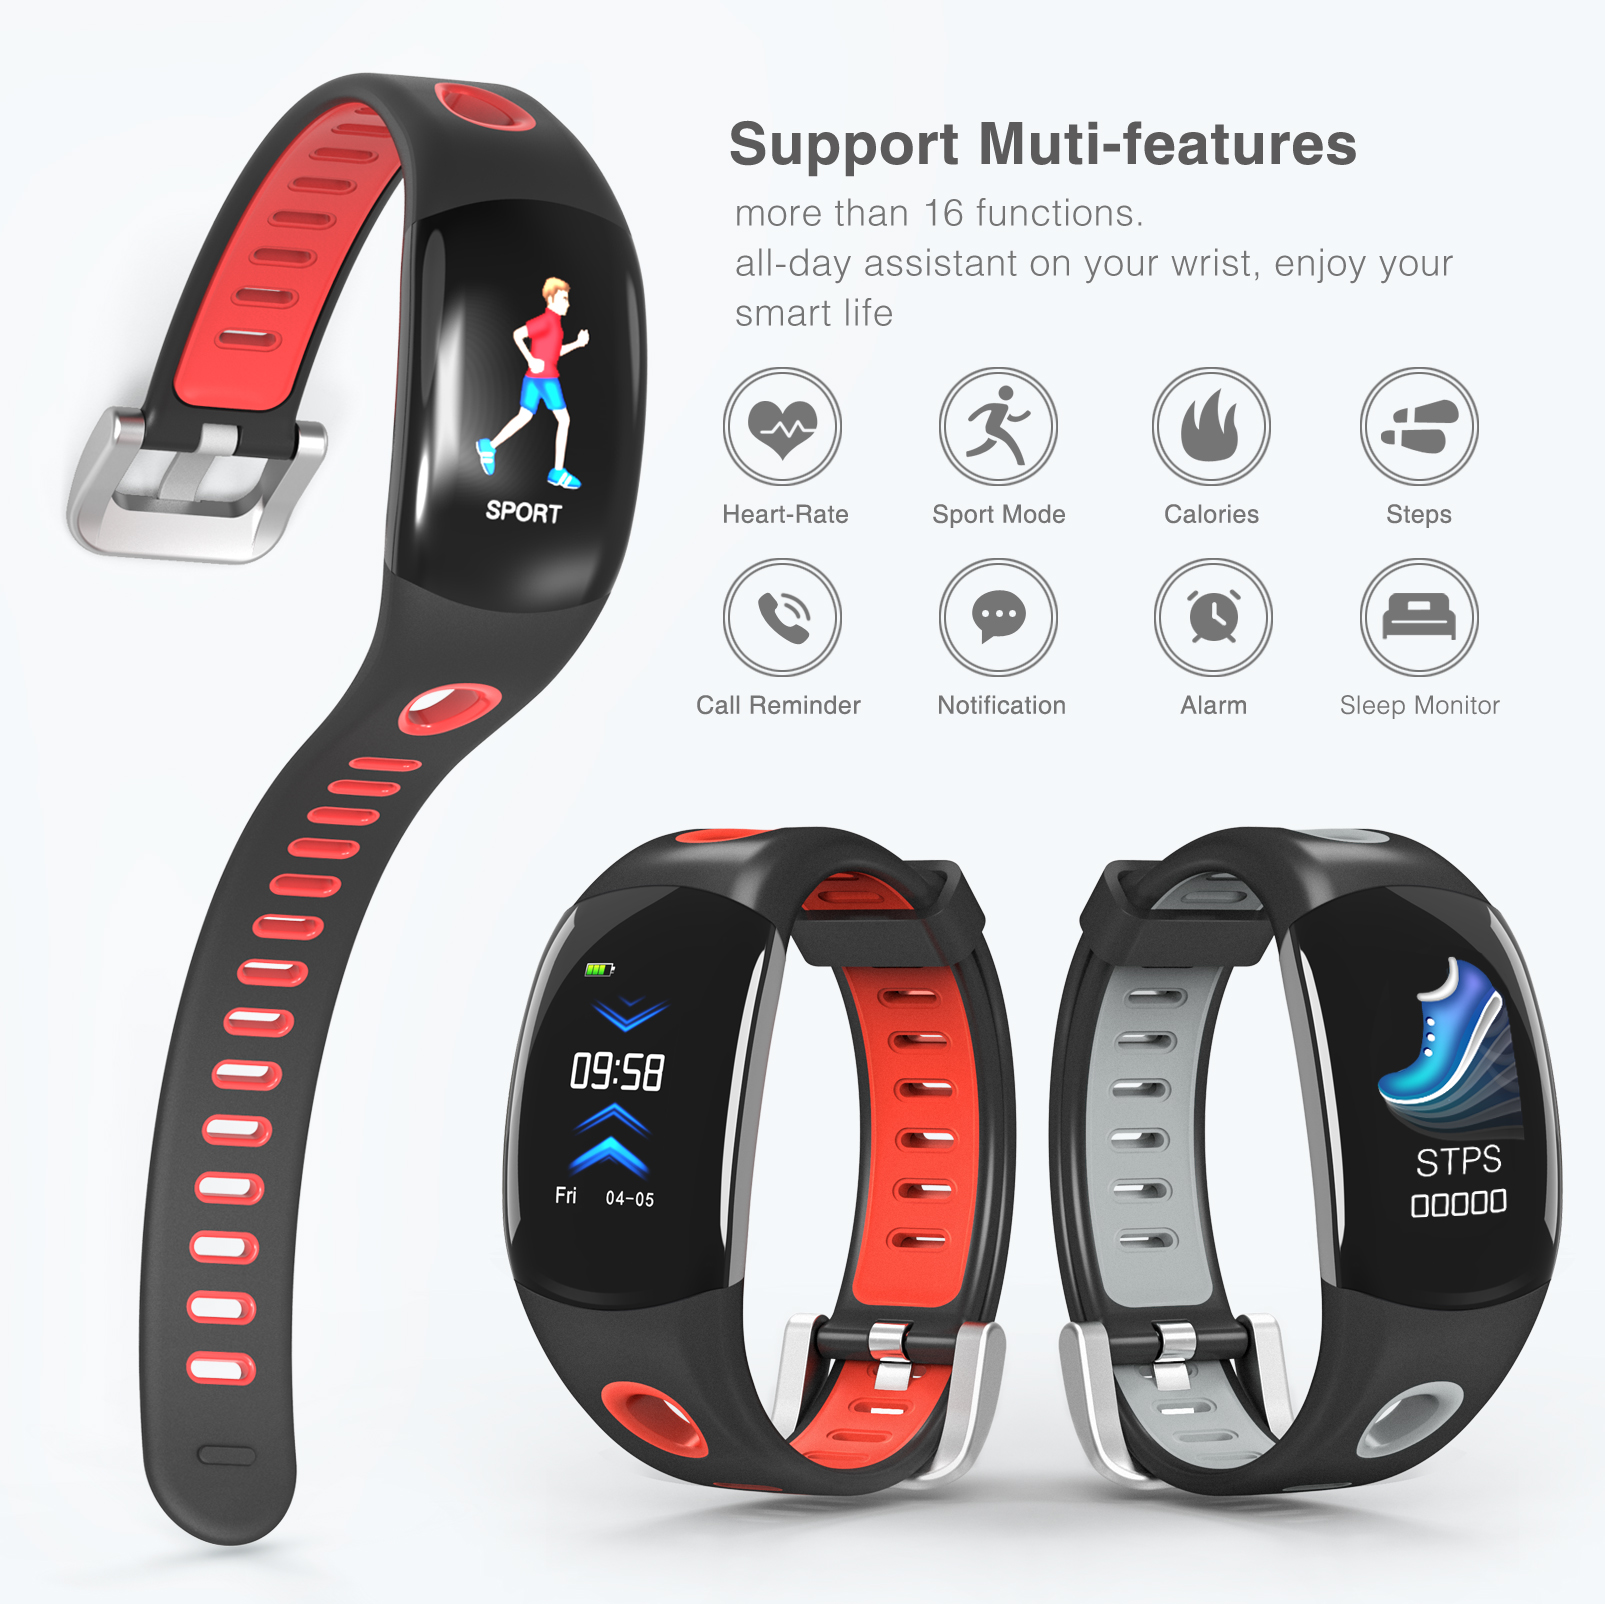 Multifunctional Fitness Waterproof Sport smart watch With Continuous Heart Rate Monitoring